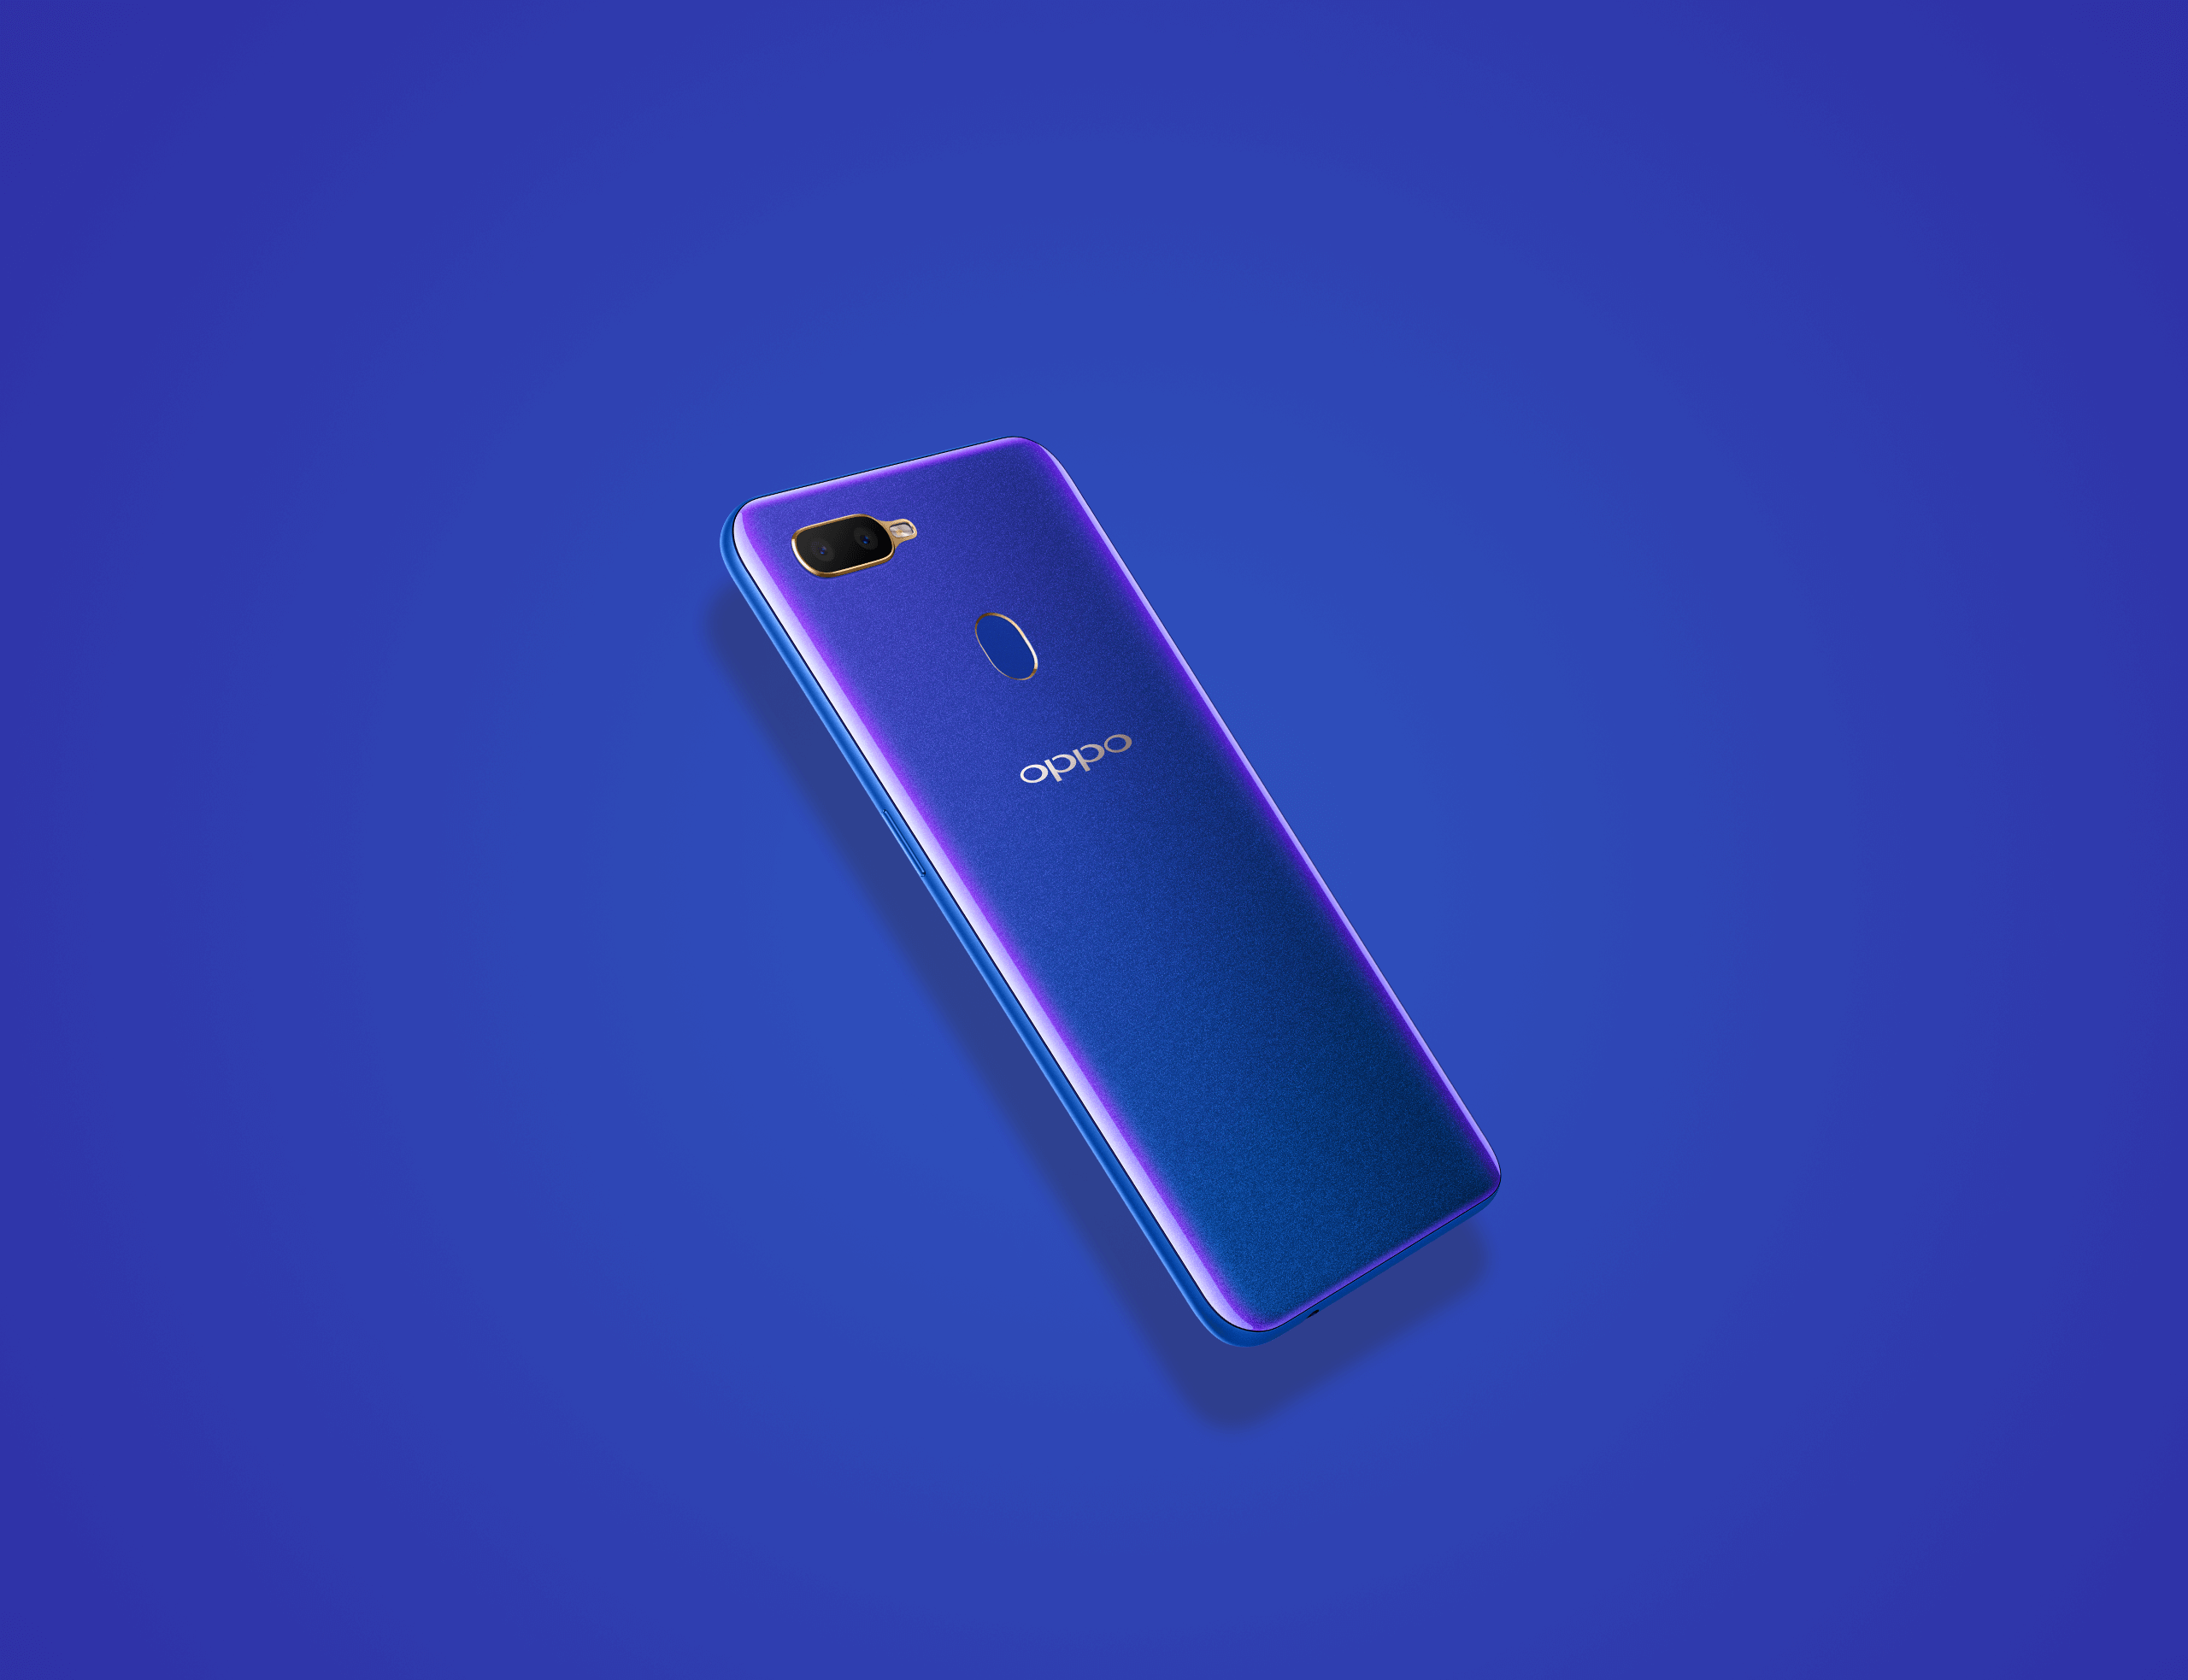 OPPO A5s - classic color